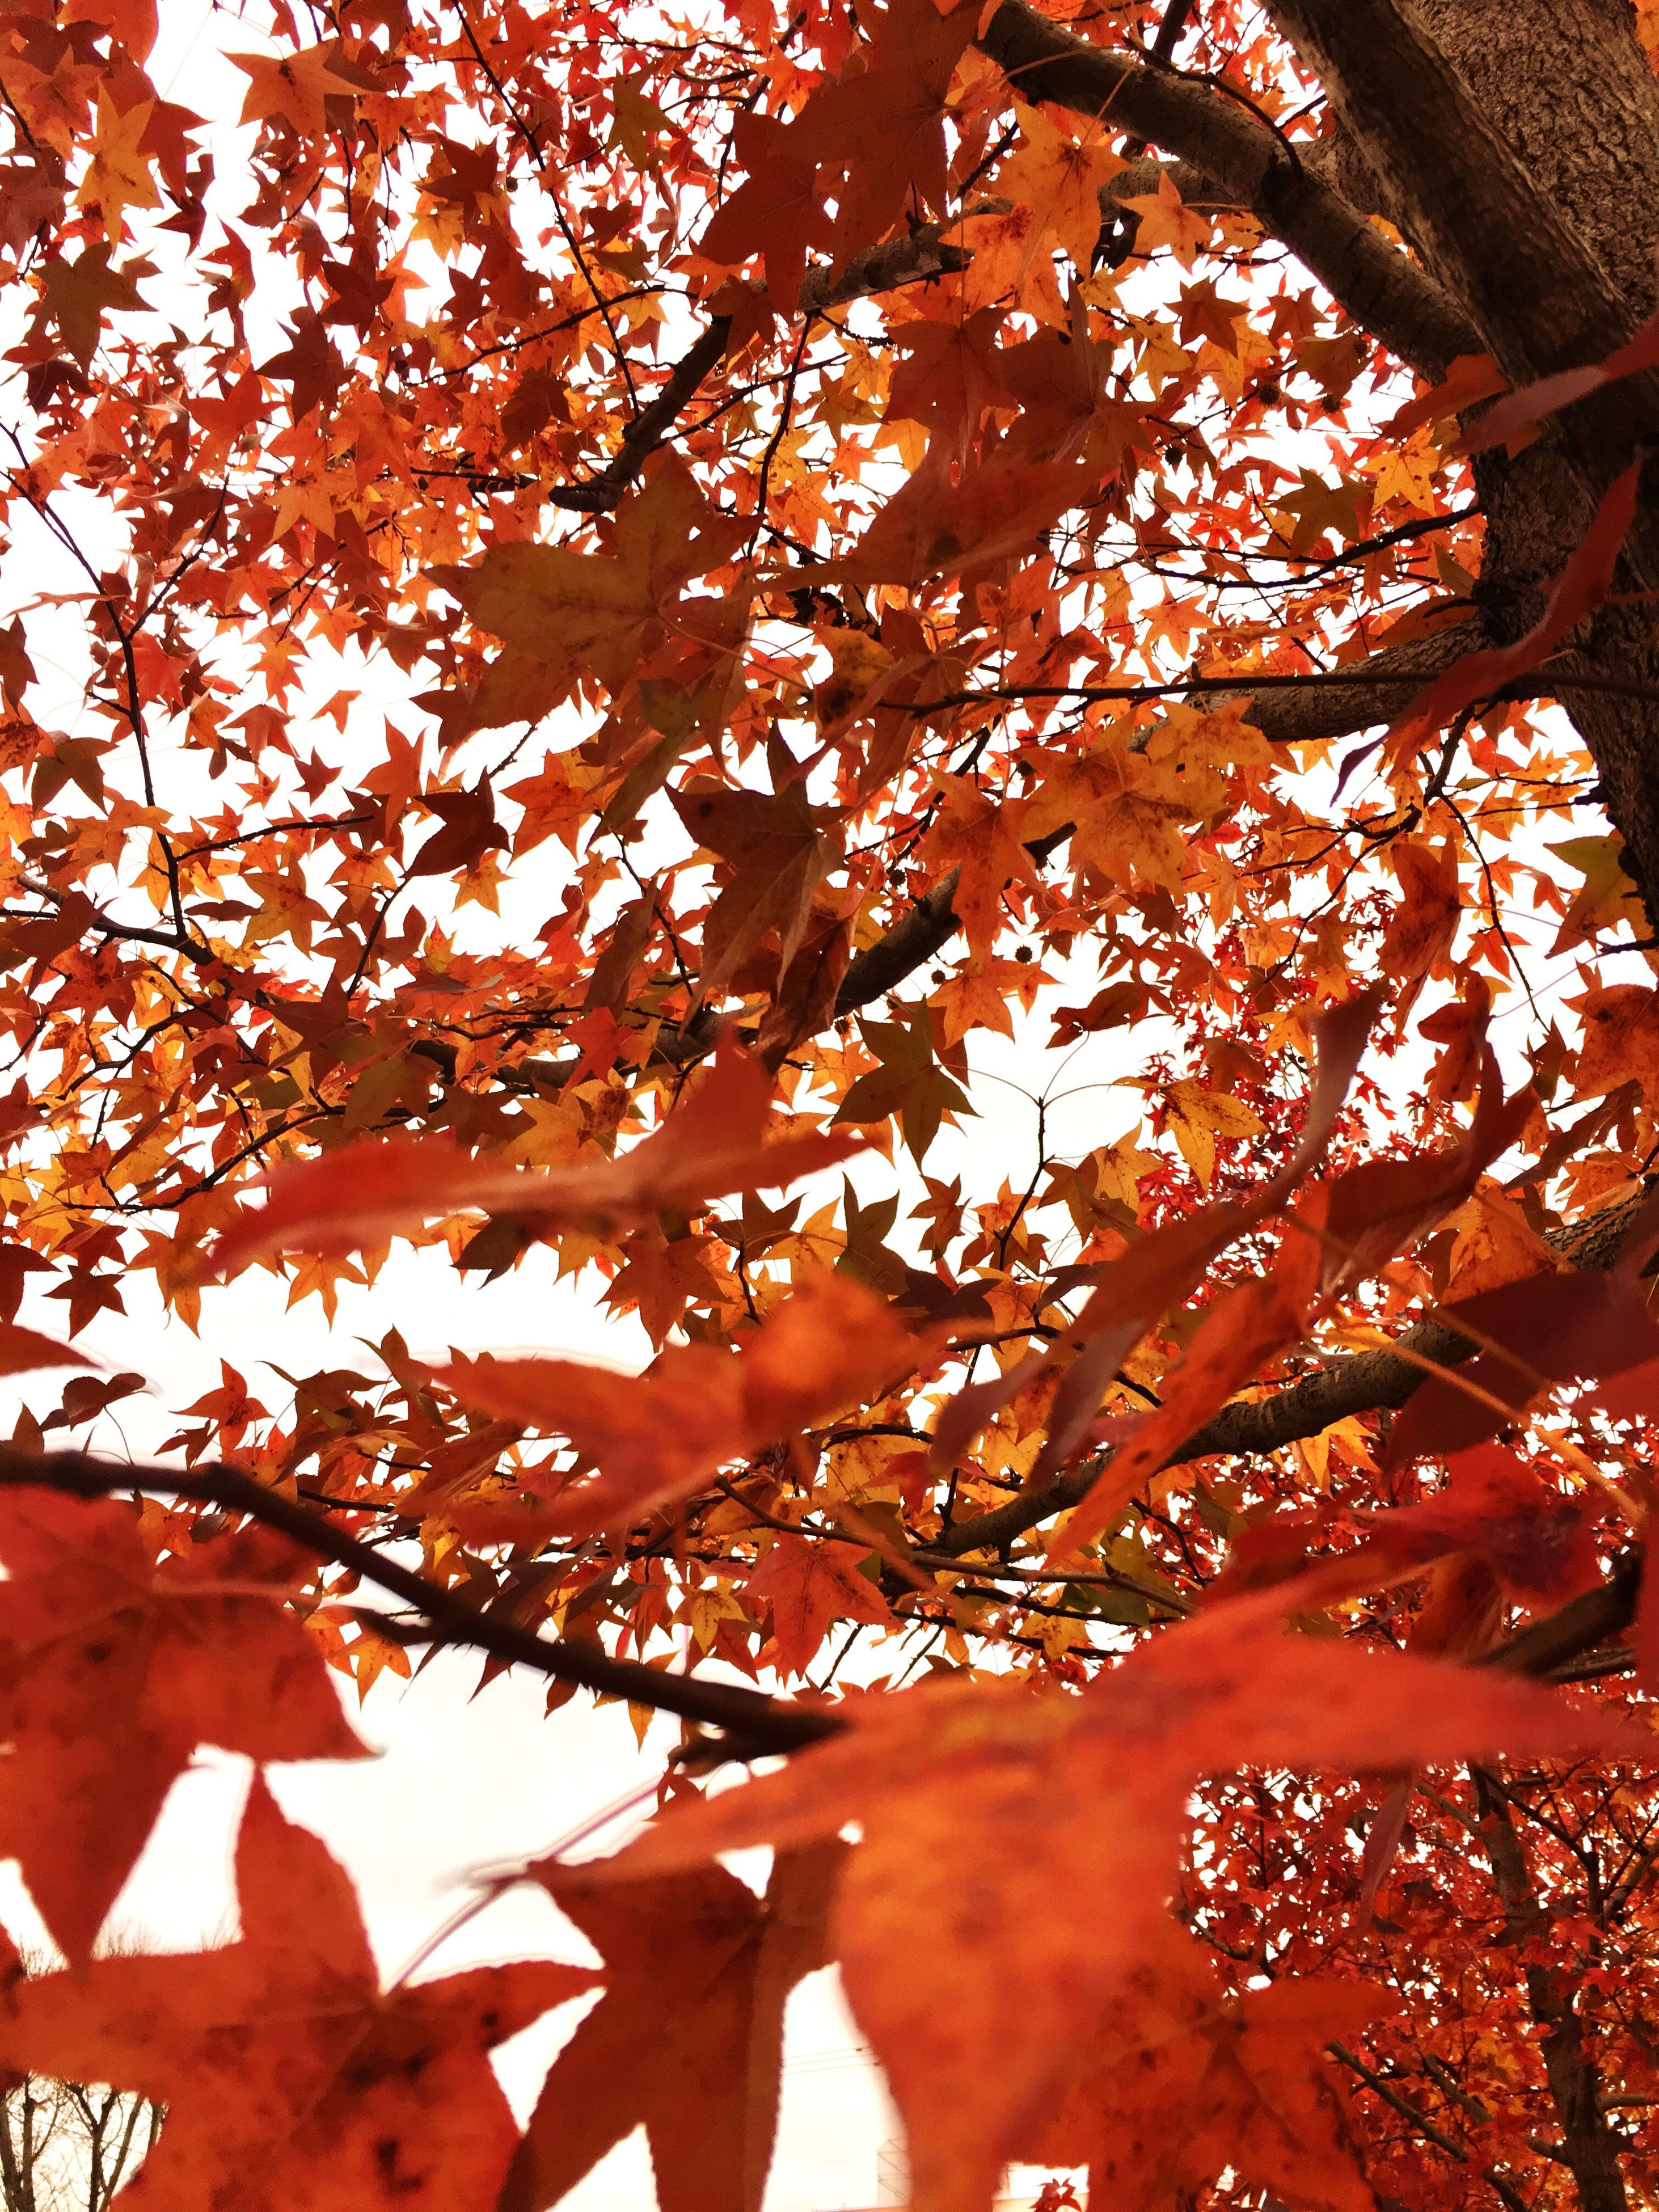 orange color, nature, no people, outdoors, beauty in nature, backgrounds, day, tree, sky